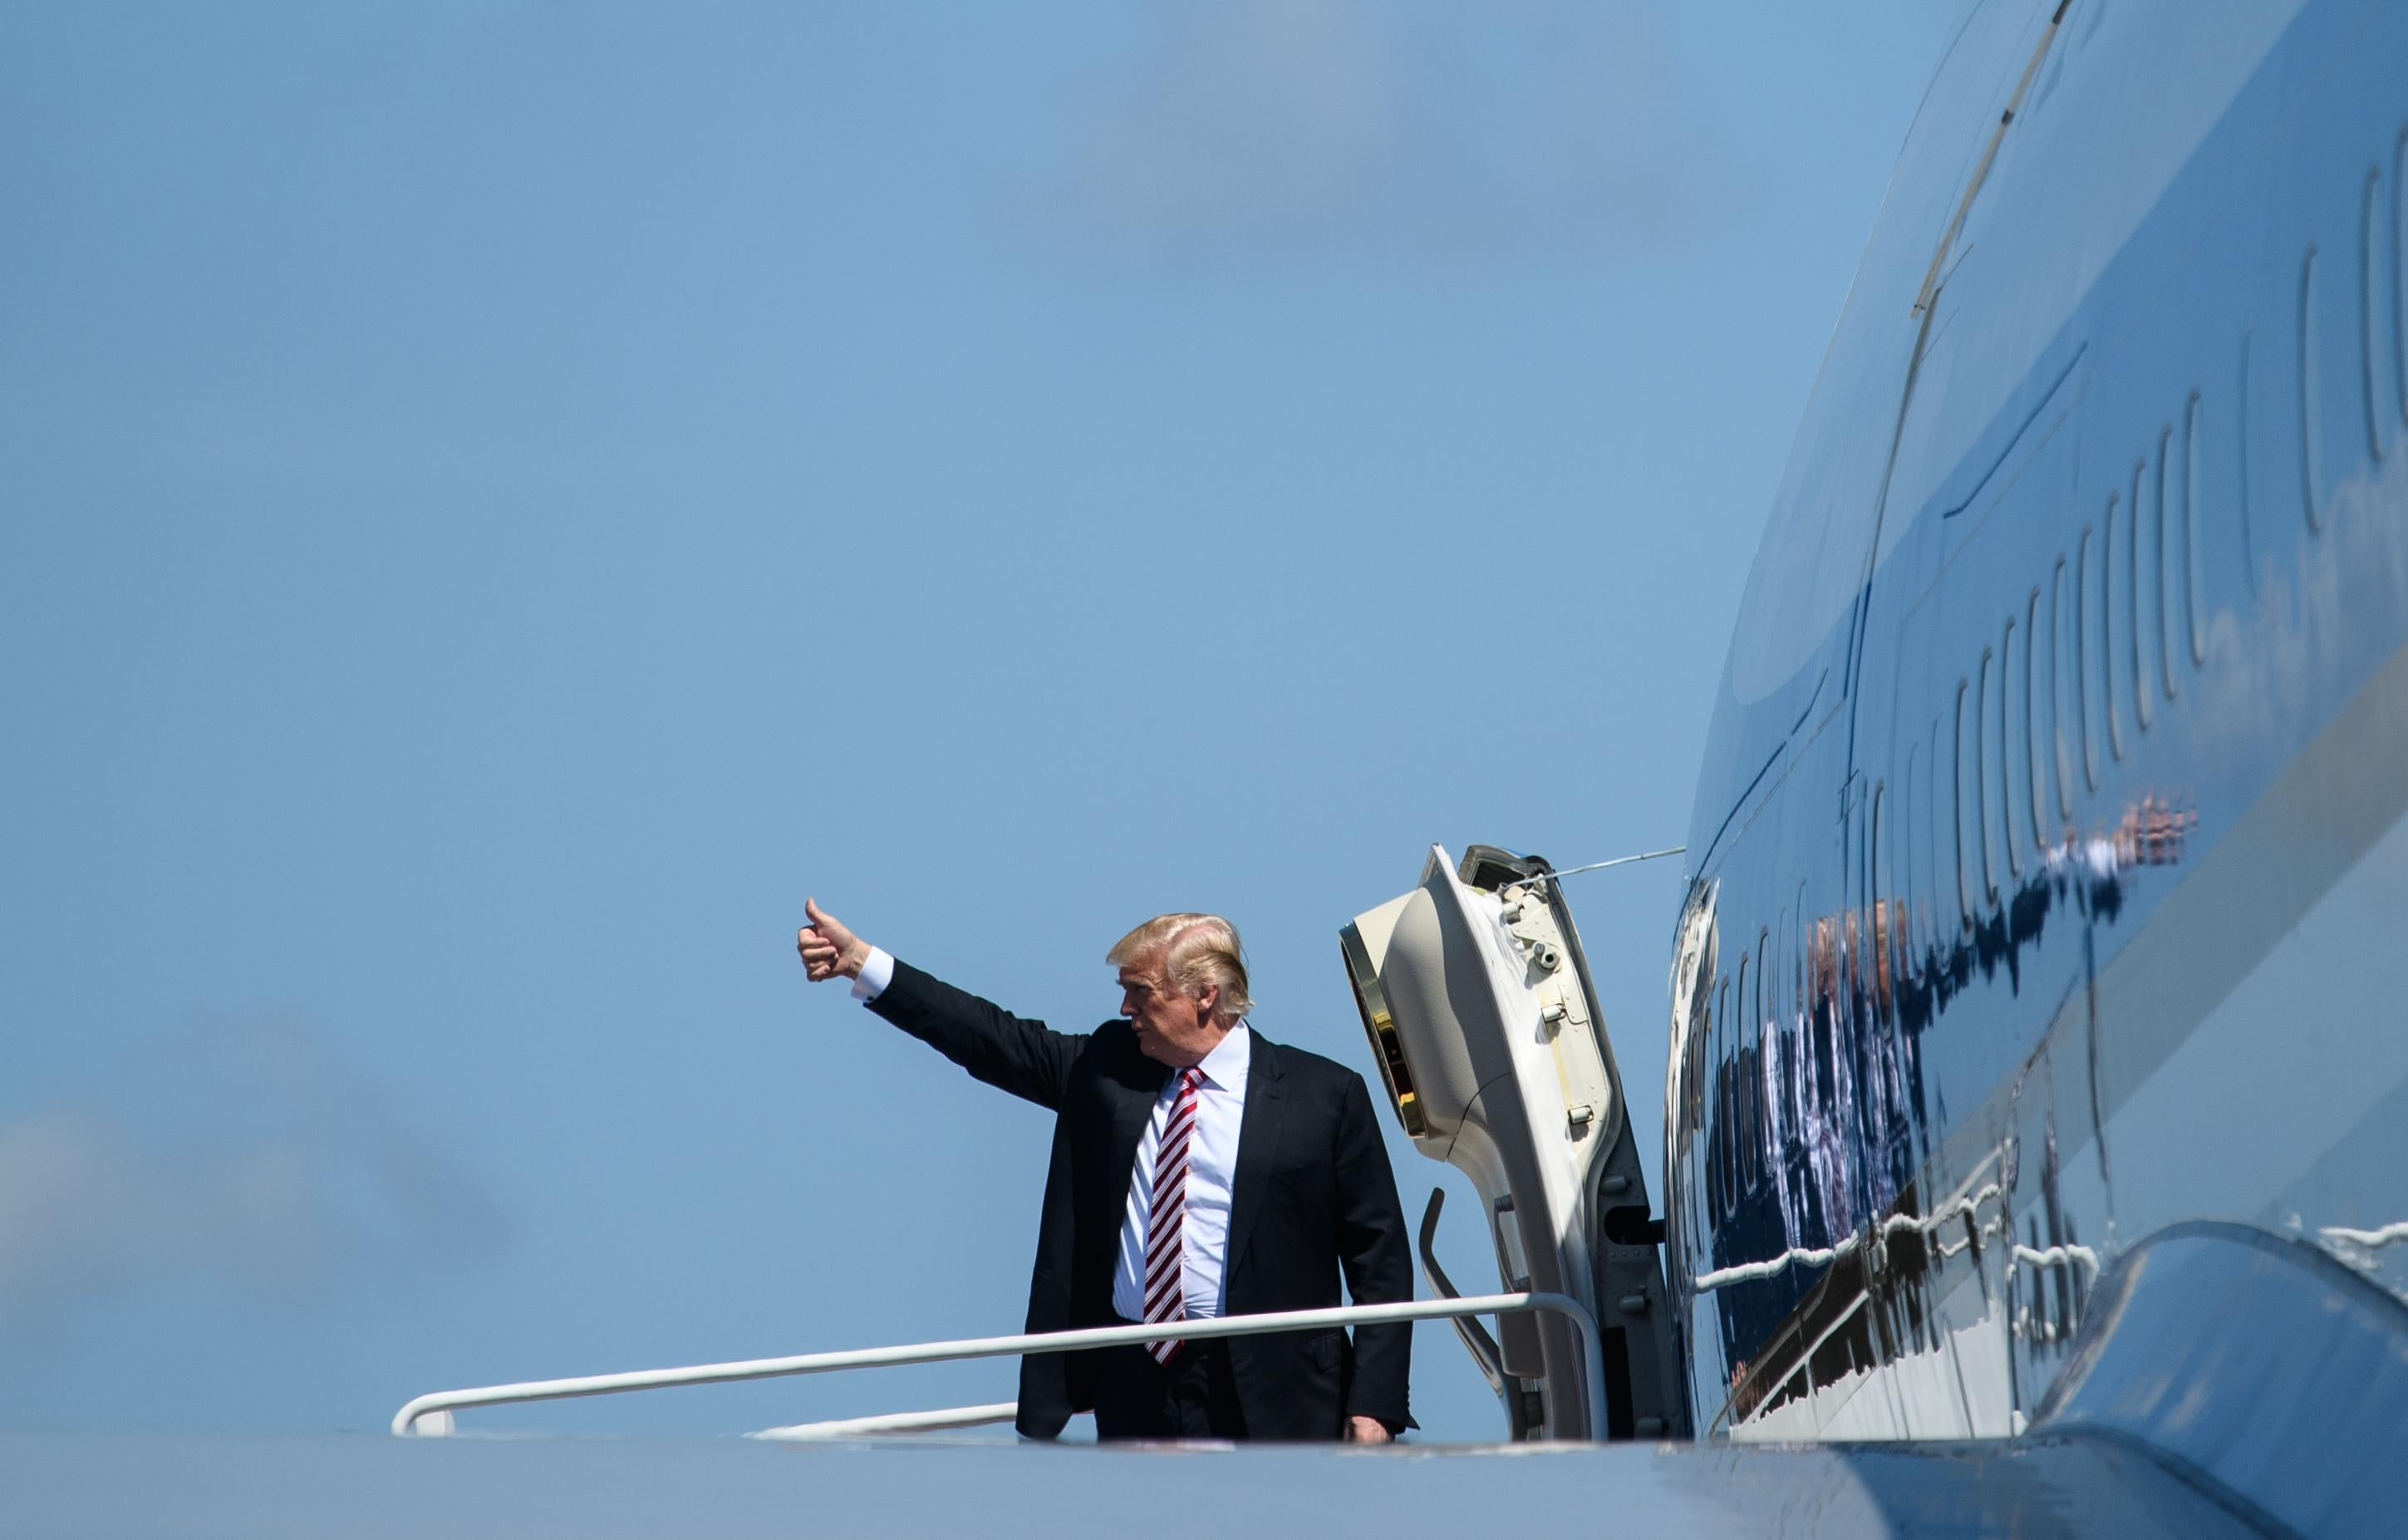 Donald Trump gives a thumbs up before boarding Air Force One.